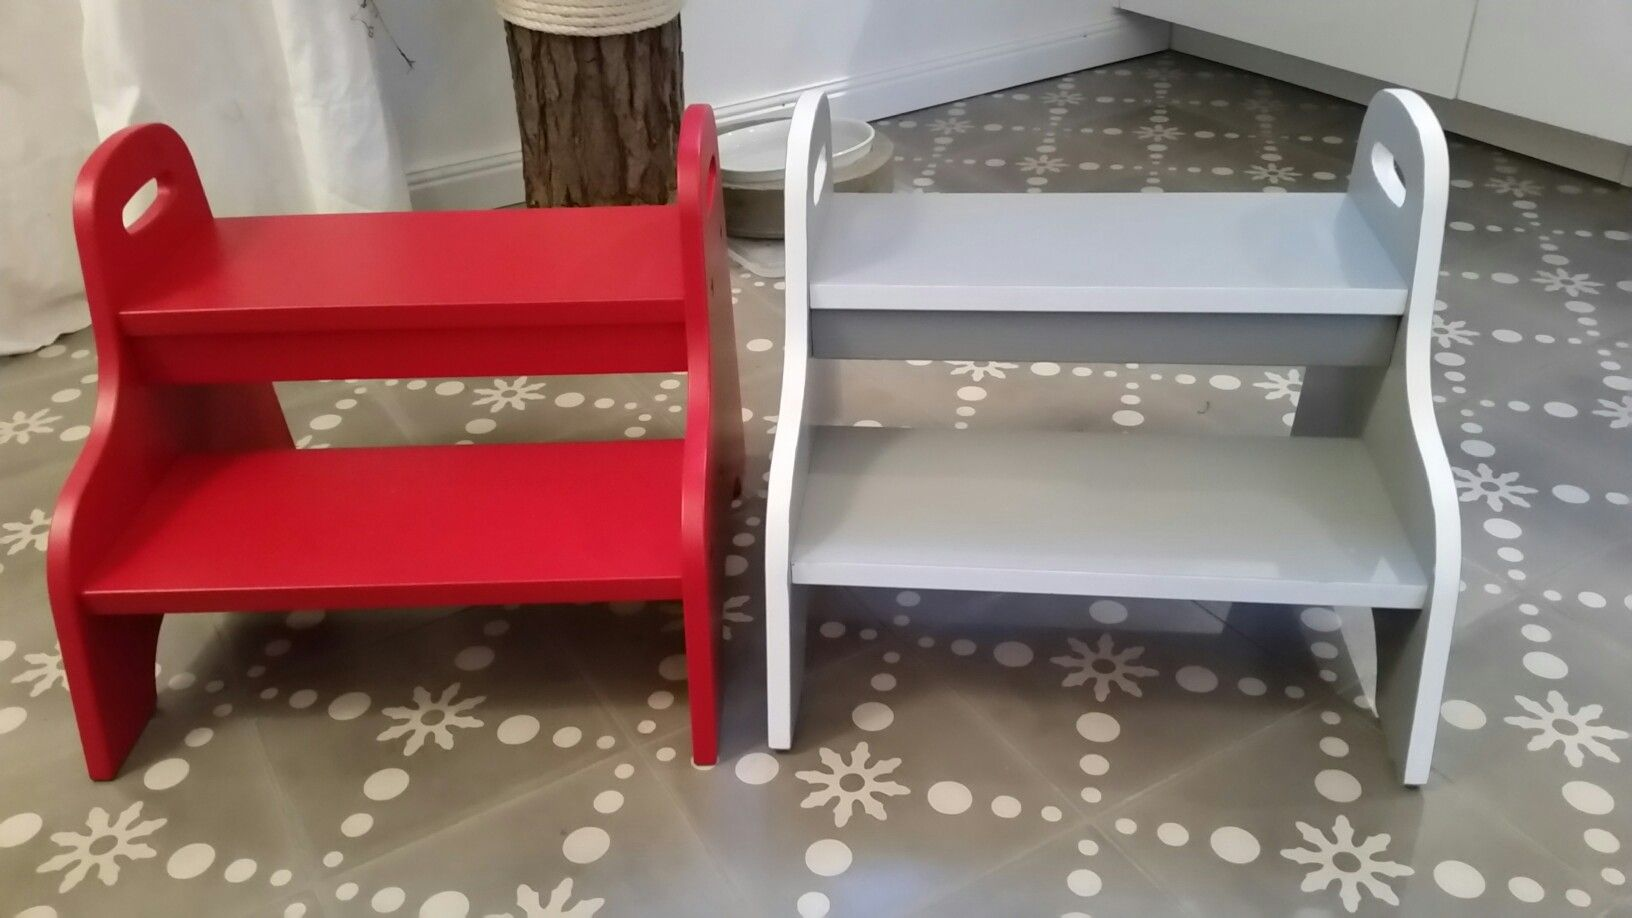 Ikea Rote Küchenfront Ikea Trogen Footstool Hack Customized To Match The Color Scheme